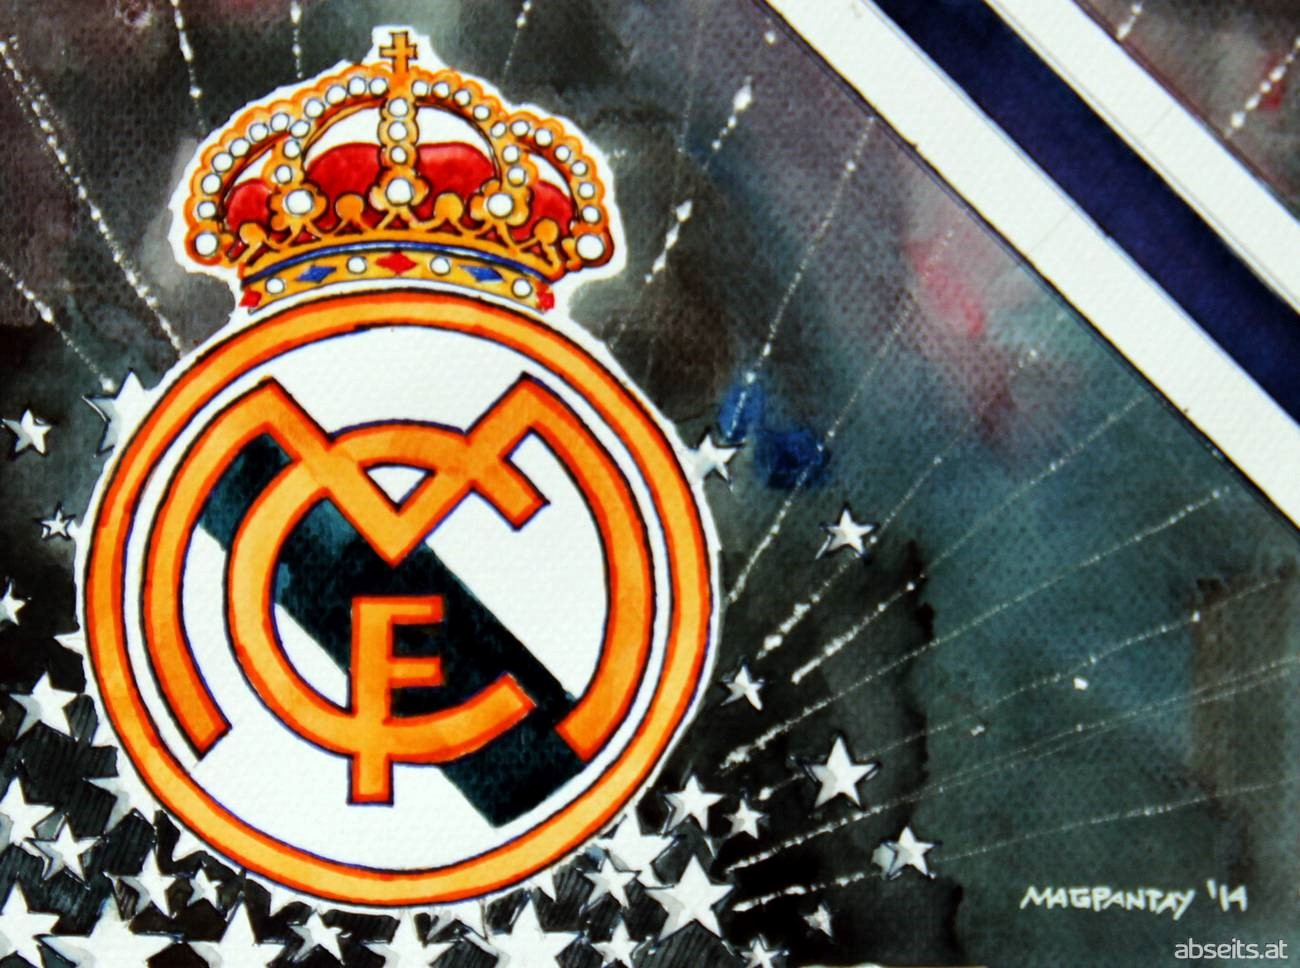 Real Madrid - Wappen mit Farben_abseits.at